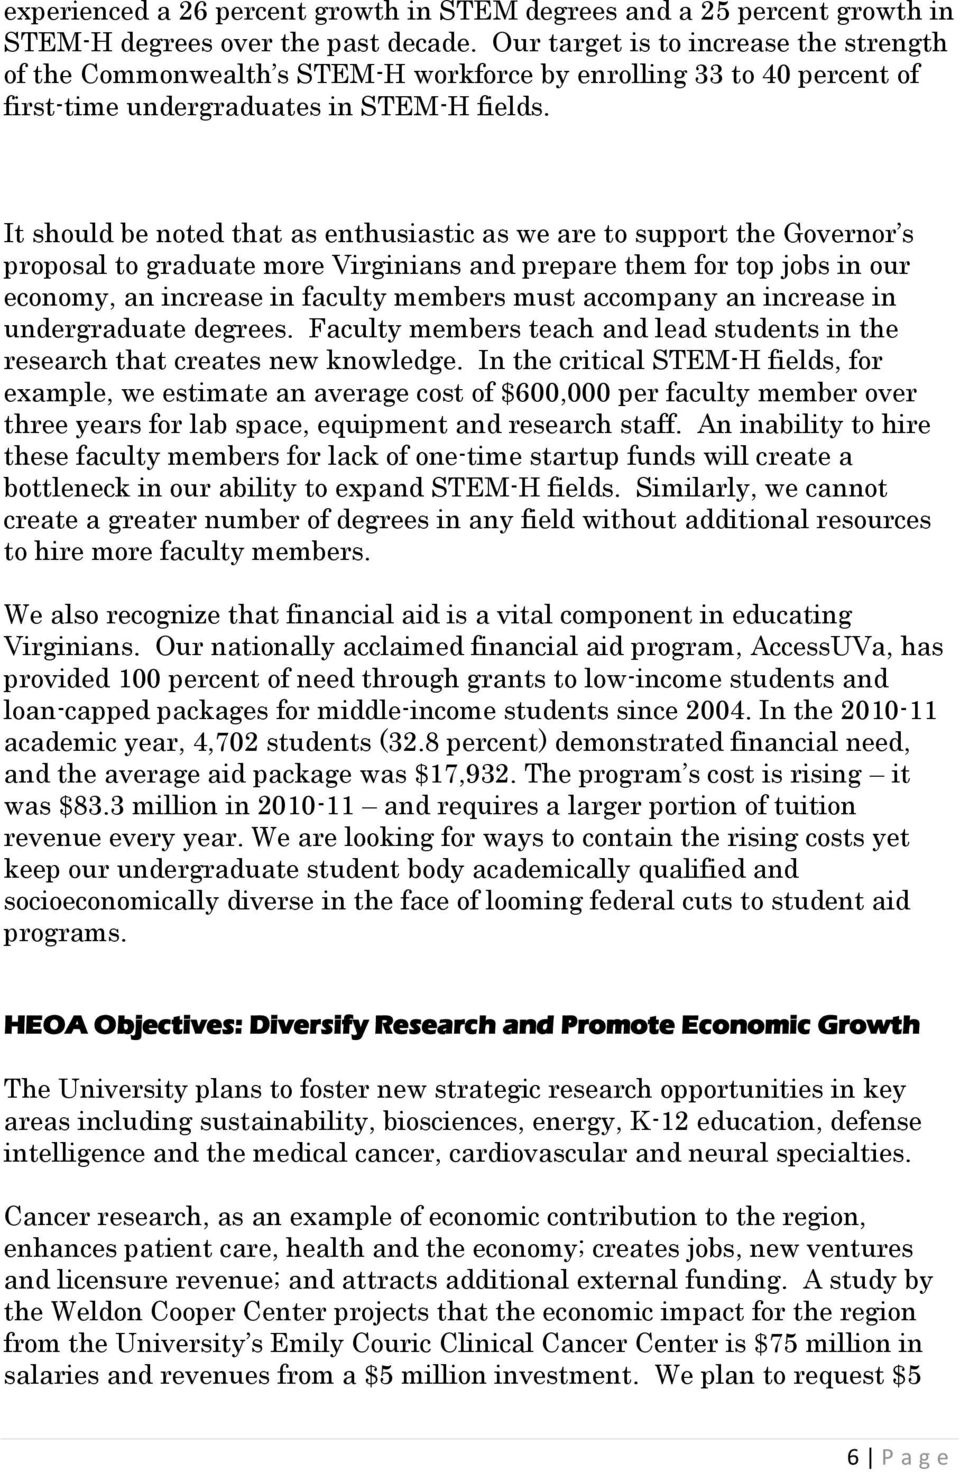 It should be noted that as enthusiastic as we are to support the Governor s proposal to graduate more Virginians and prepare them for top jobs in our economy, an increase in faculty members must